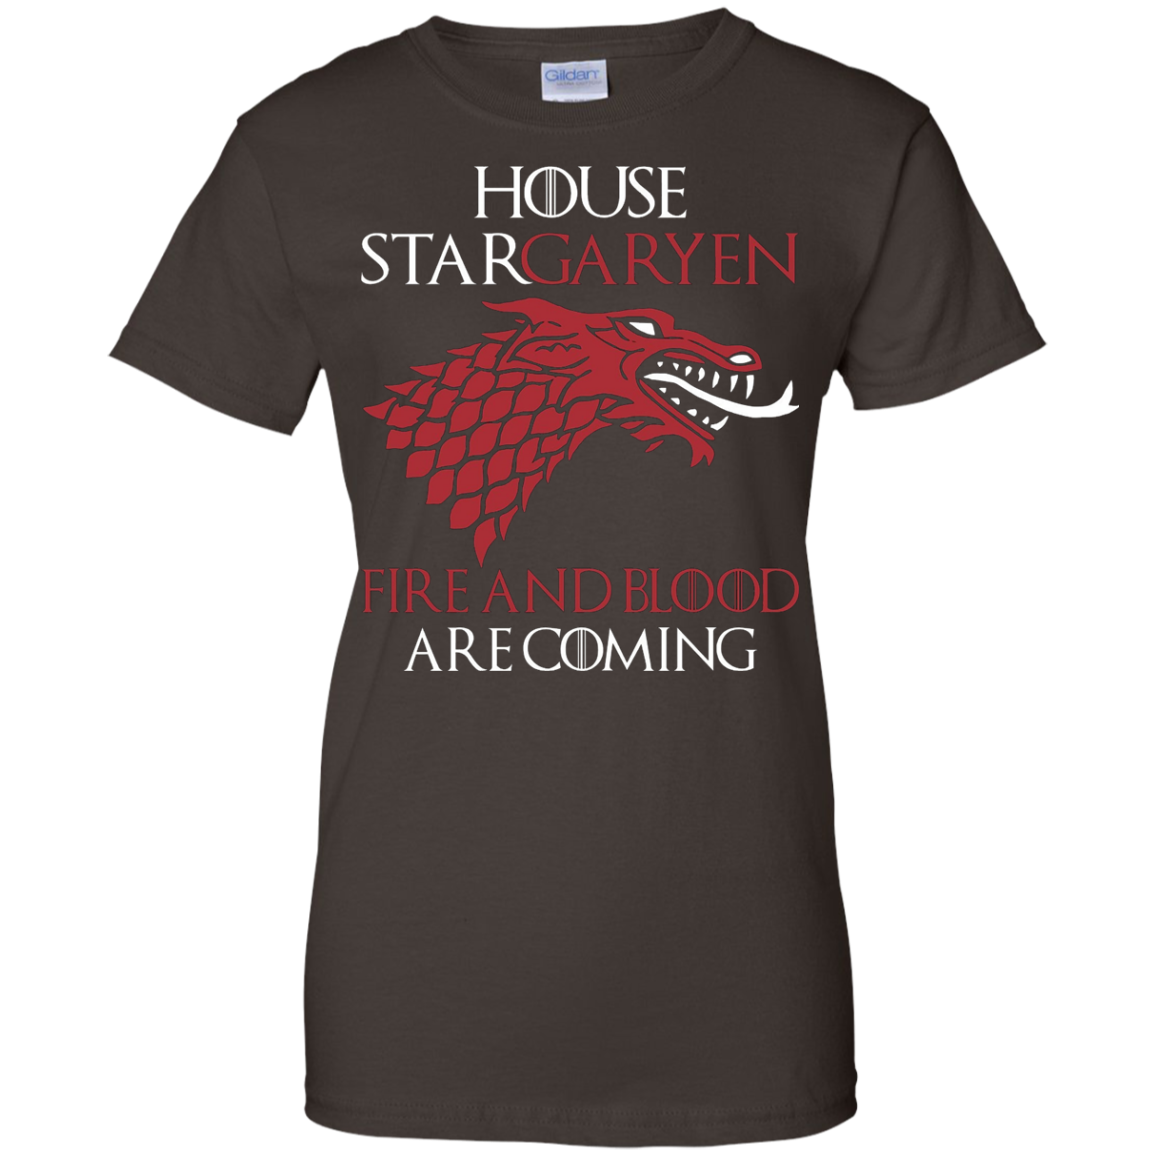 House StarGaryen Fire and Blood are coming